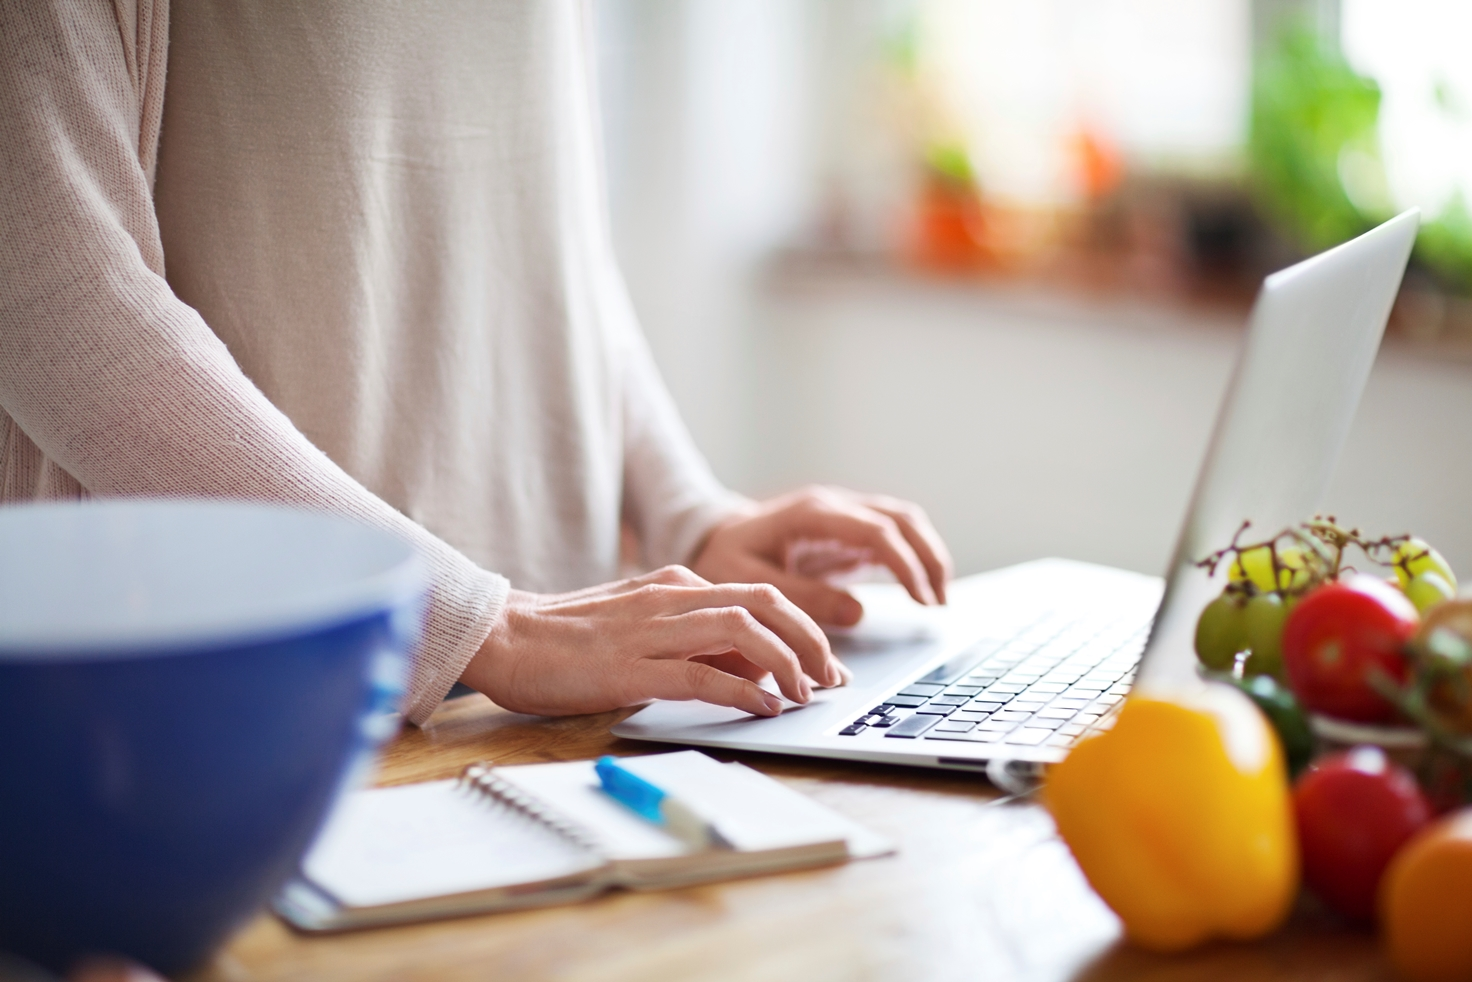 The best cooking websites for students | Jobs and Careers at